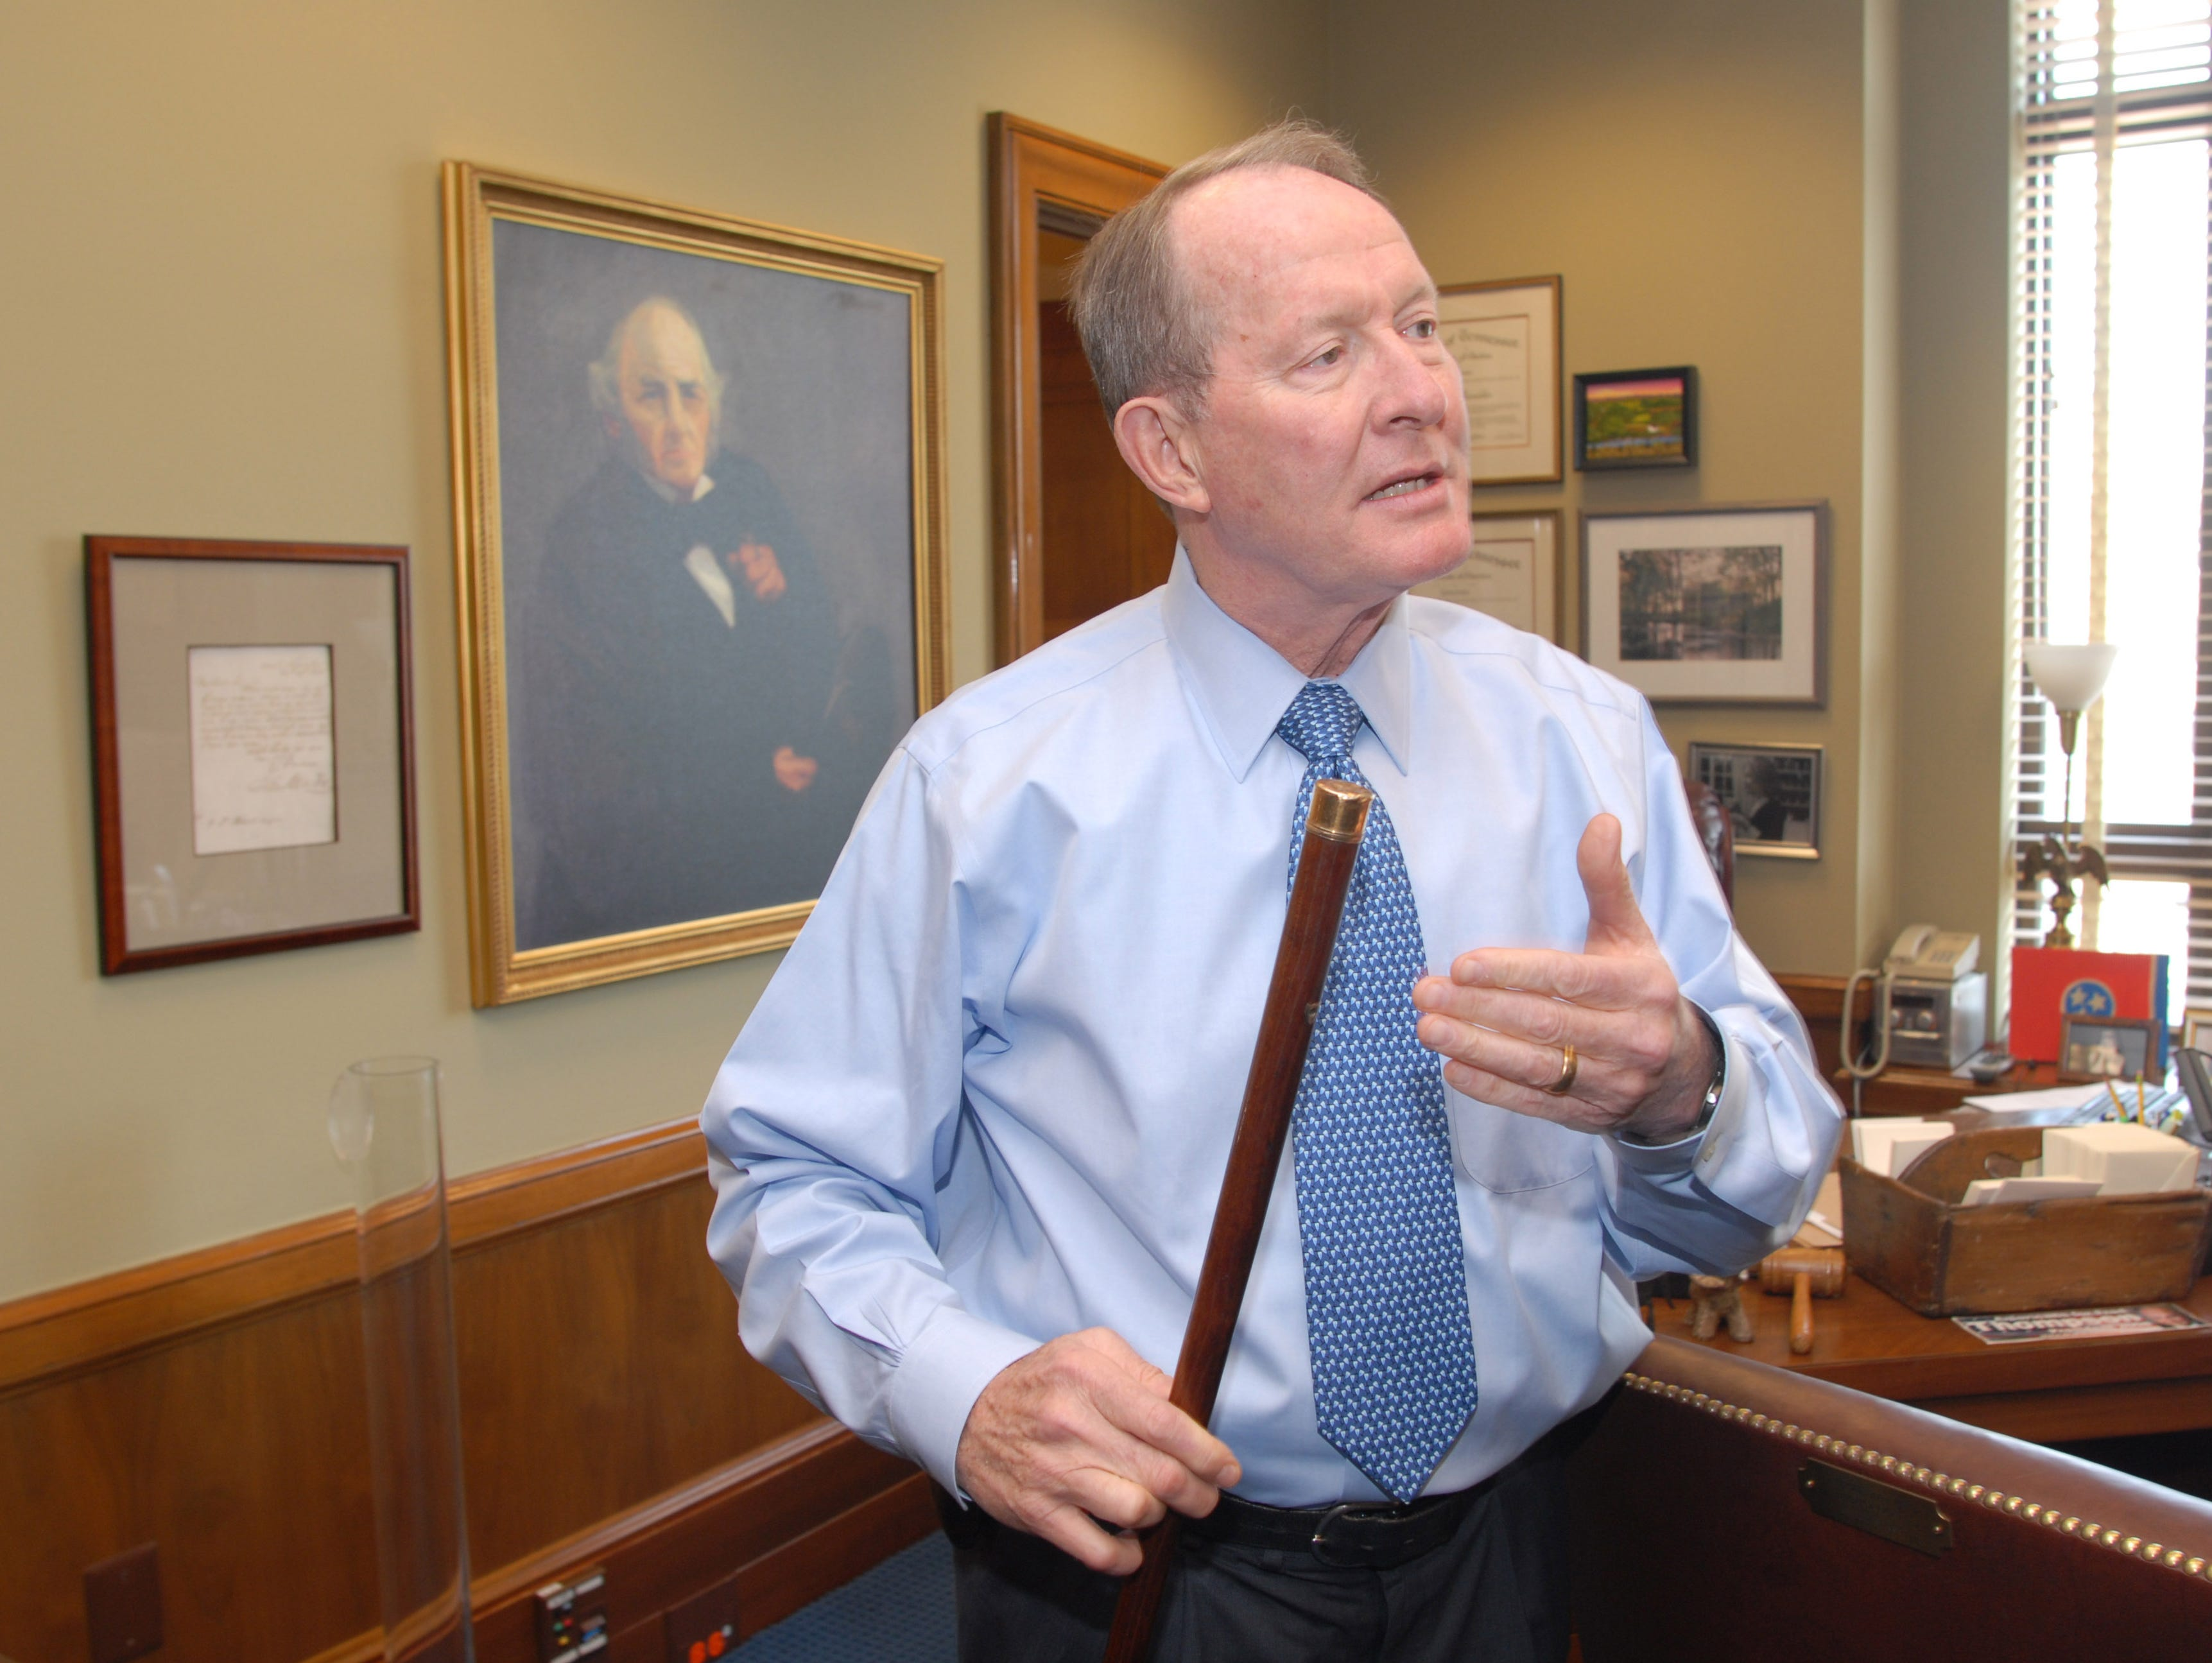 U.S. Senator Lamar Alexander talks in his DC office about his ownership of an antique walking stick once owned by Sam Houston. He's holding the cane.